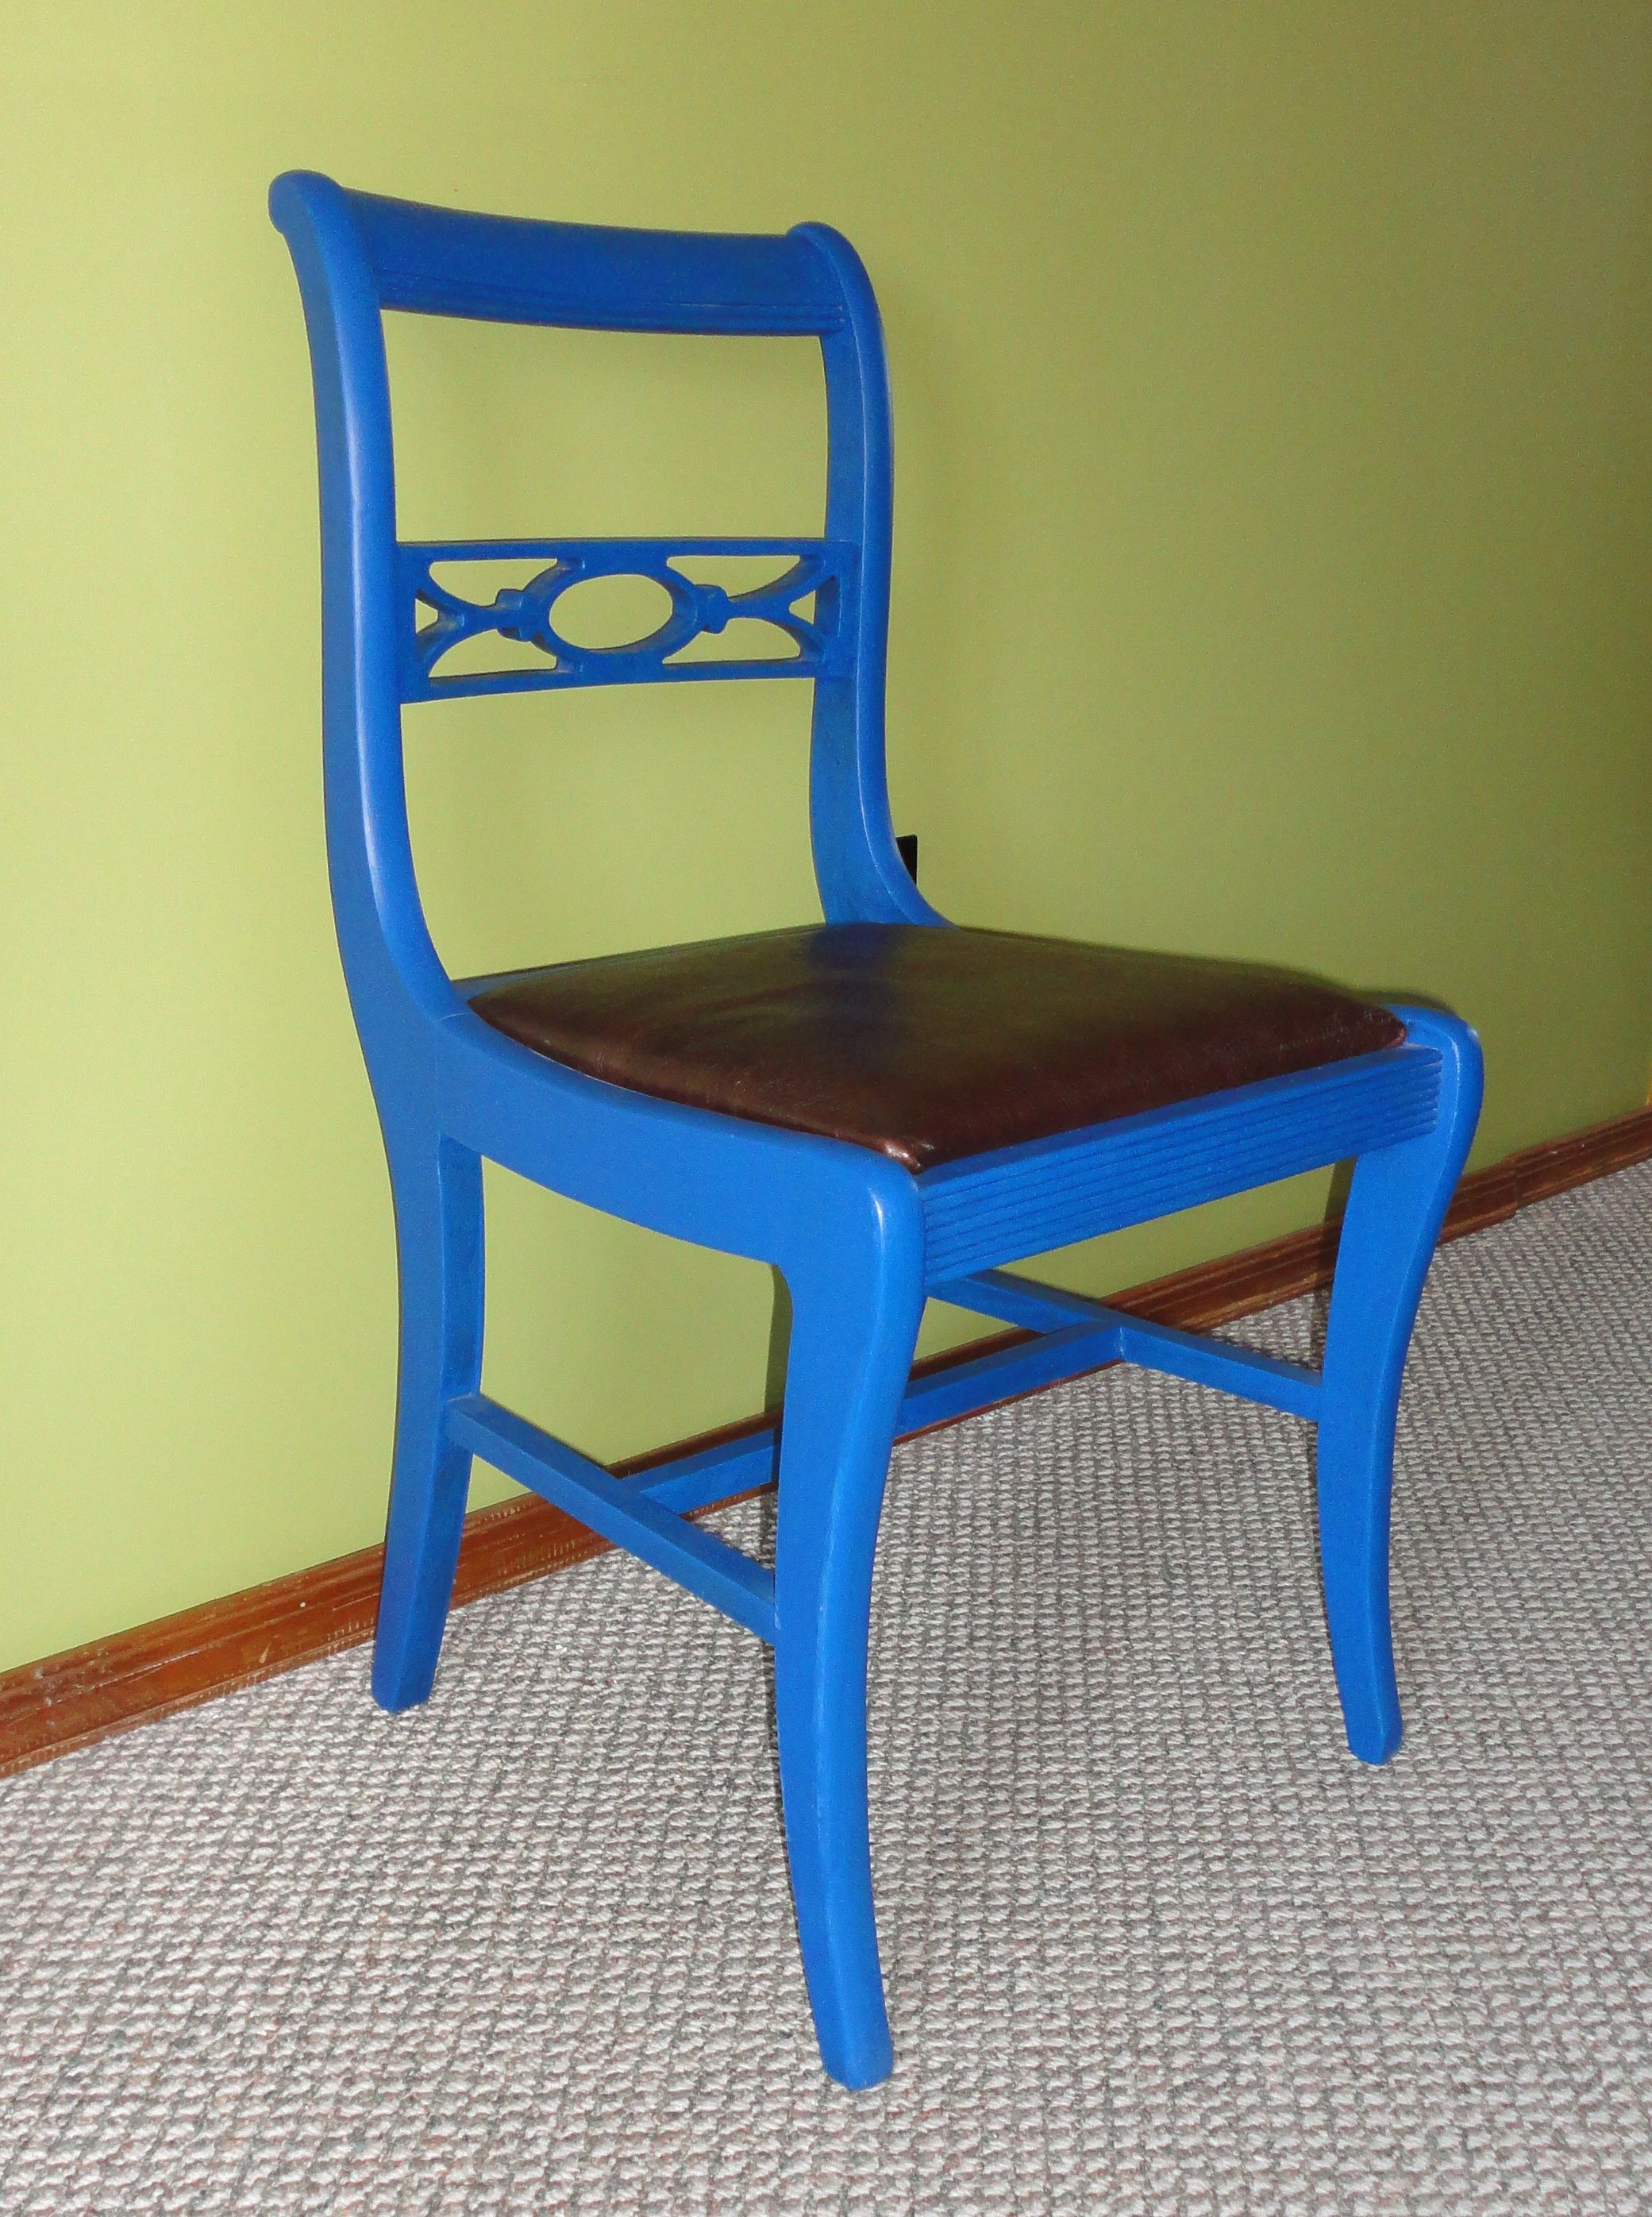 Blue Side Chair with Leather Seat Hidden Gem Furniture Old